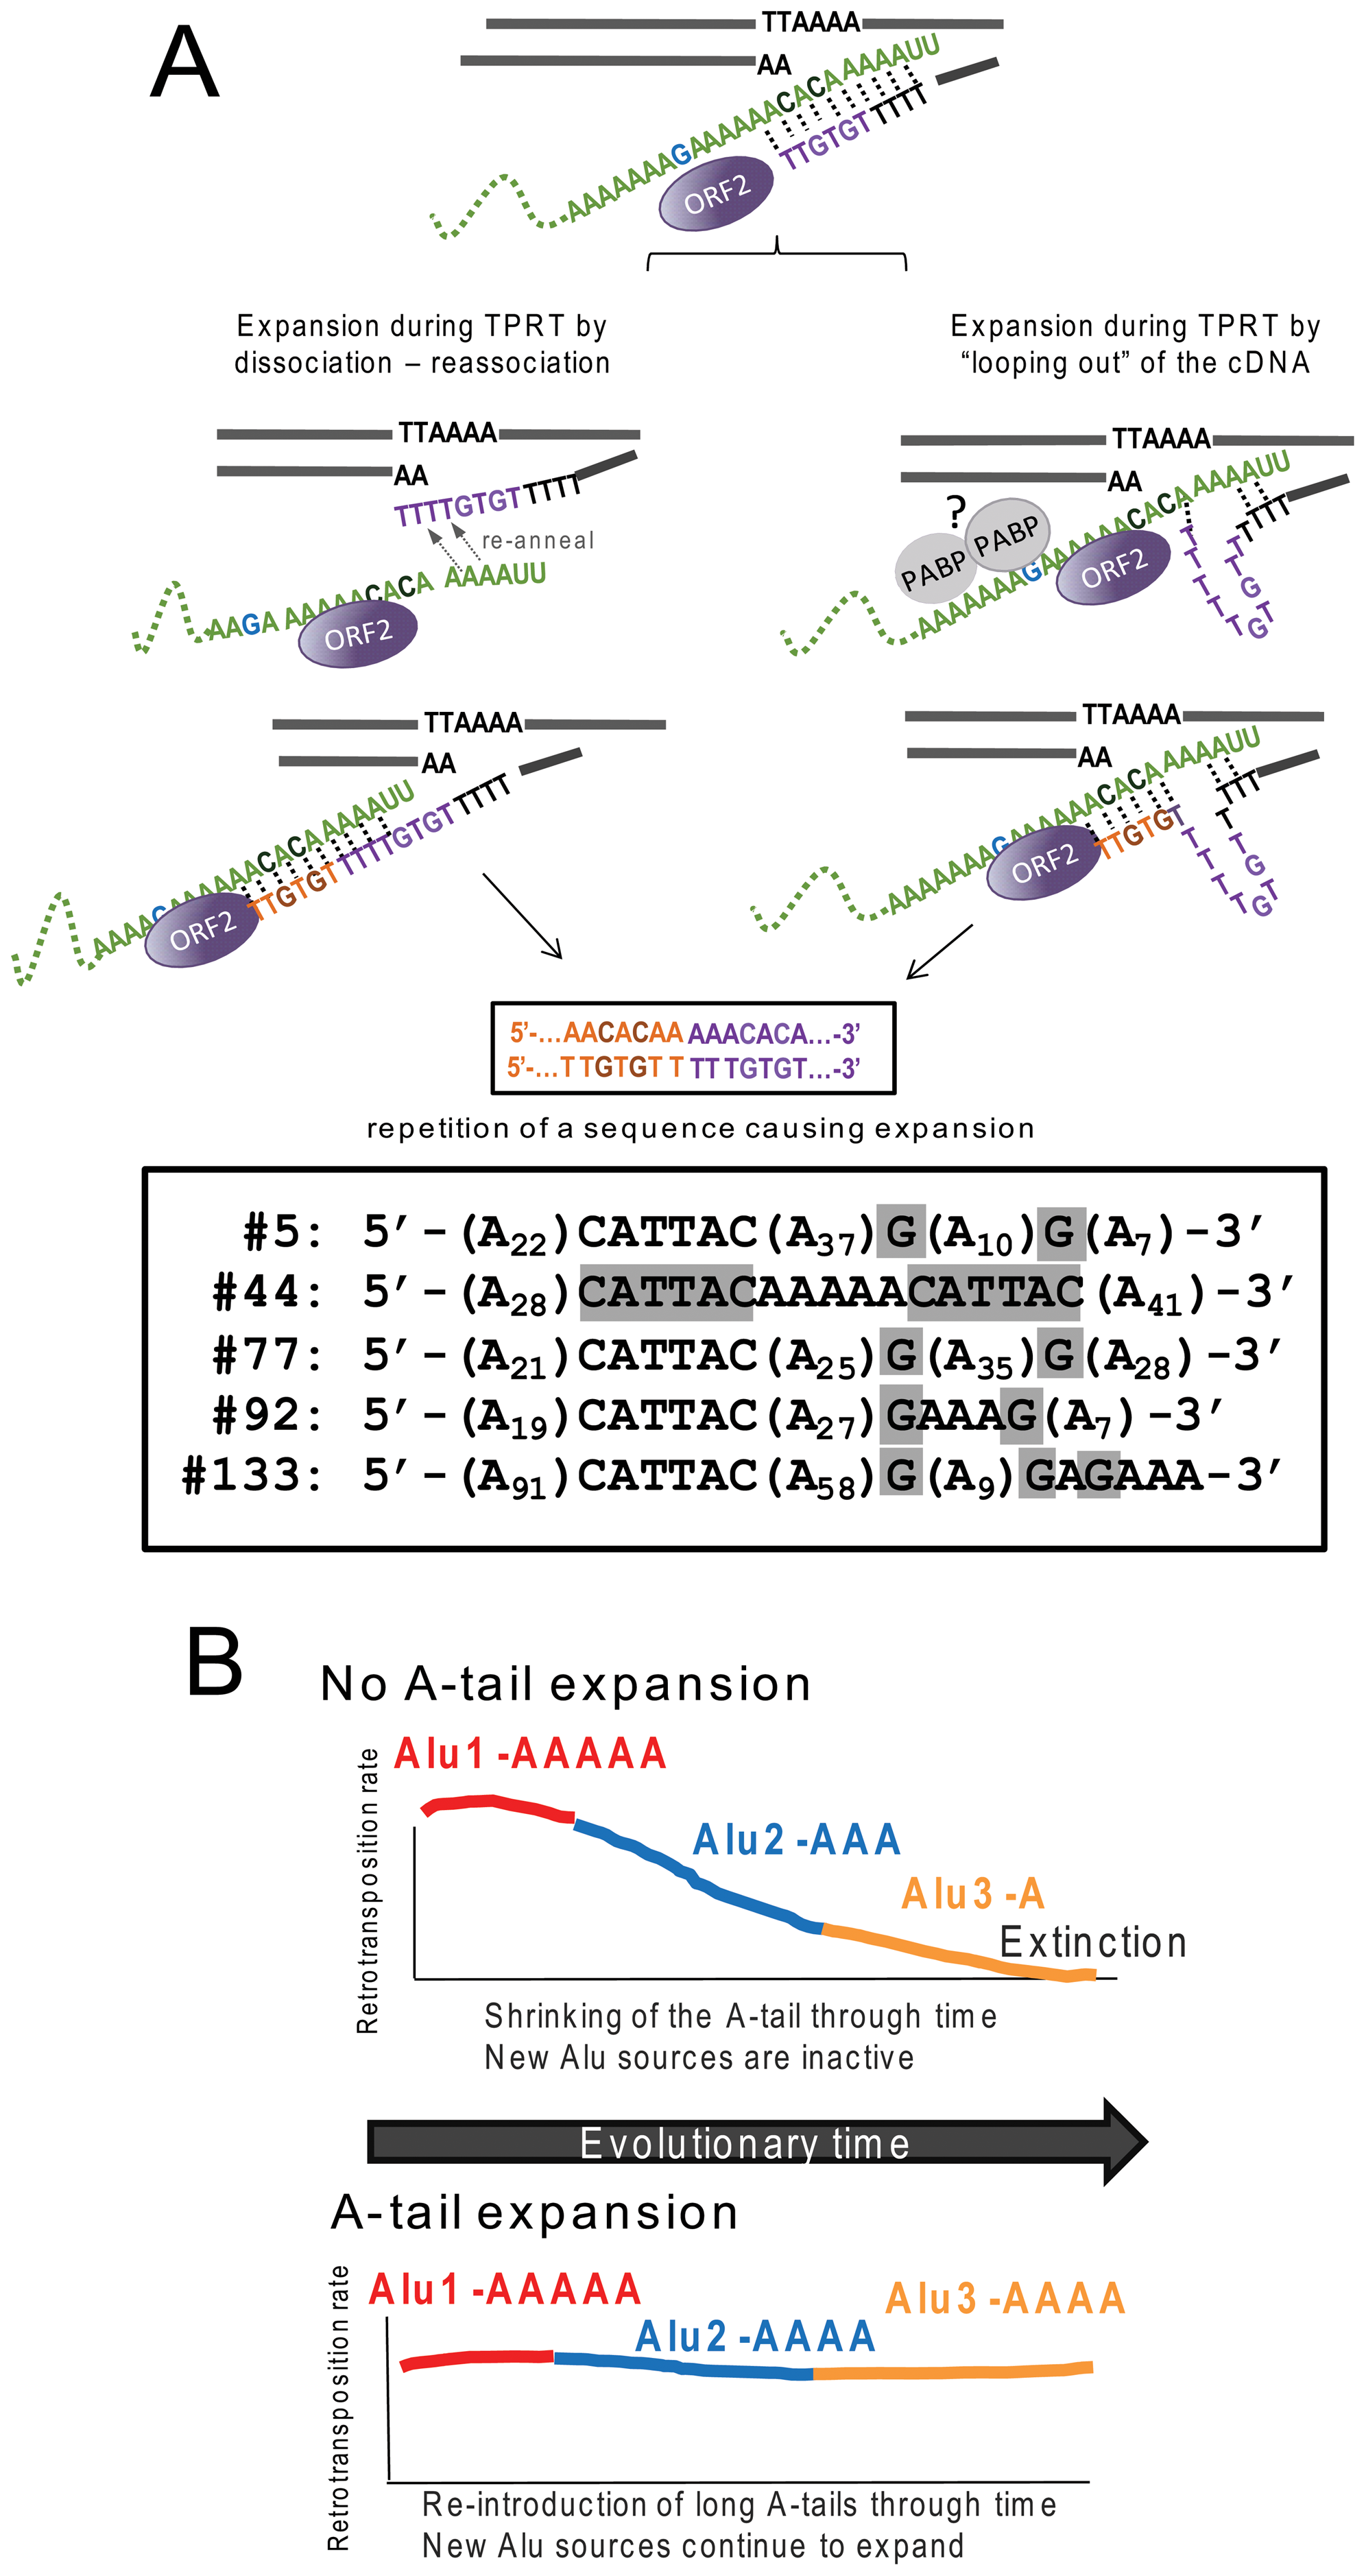 Reverse transcription by L1 ORF2p increases A-tail length of new Alu inserts and helps maintain viable Alu source elements over evolutionary time.